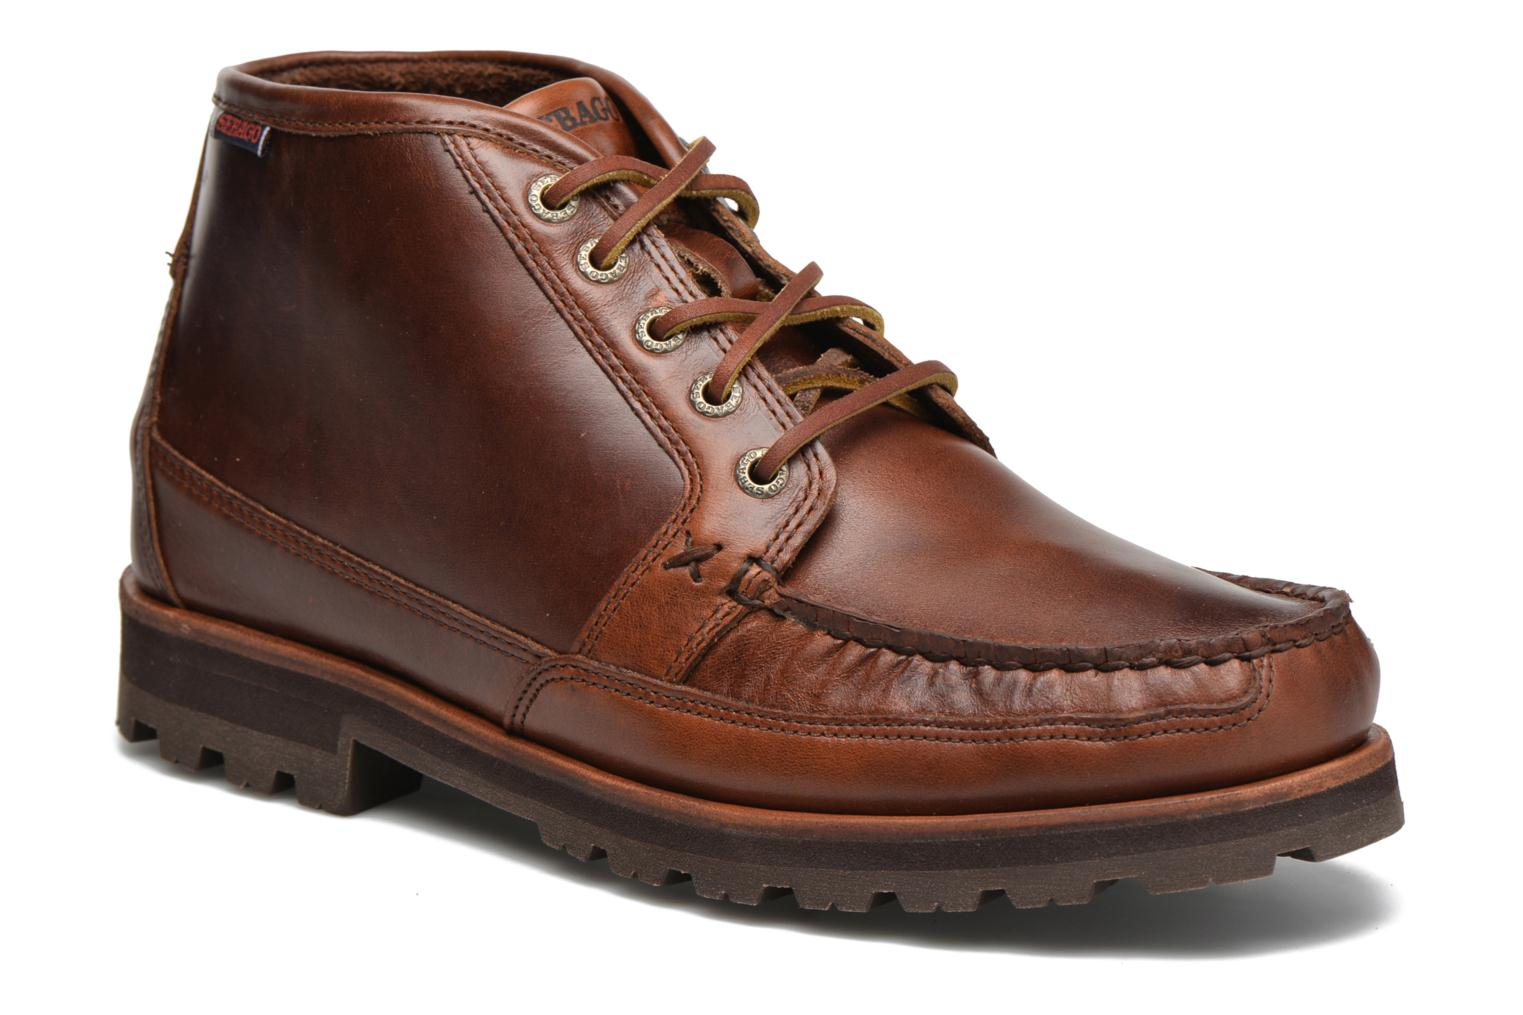 Vershire Chukka Brown Oiled Waxy Lea